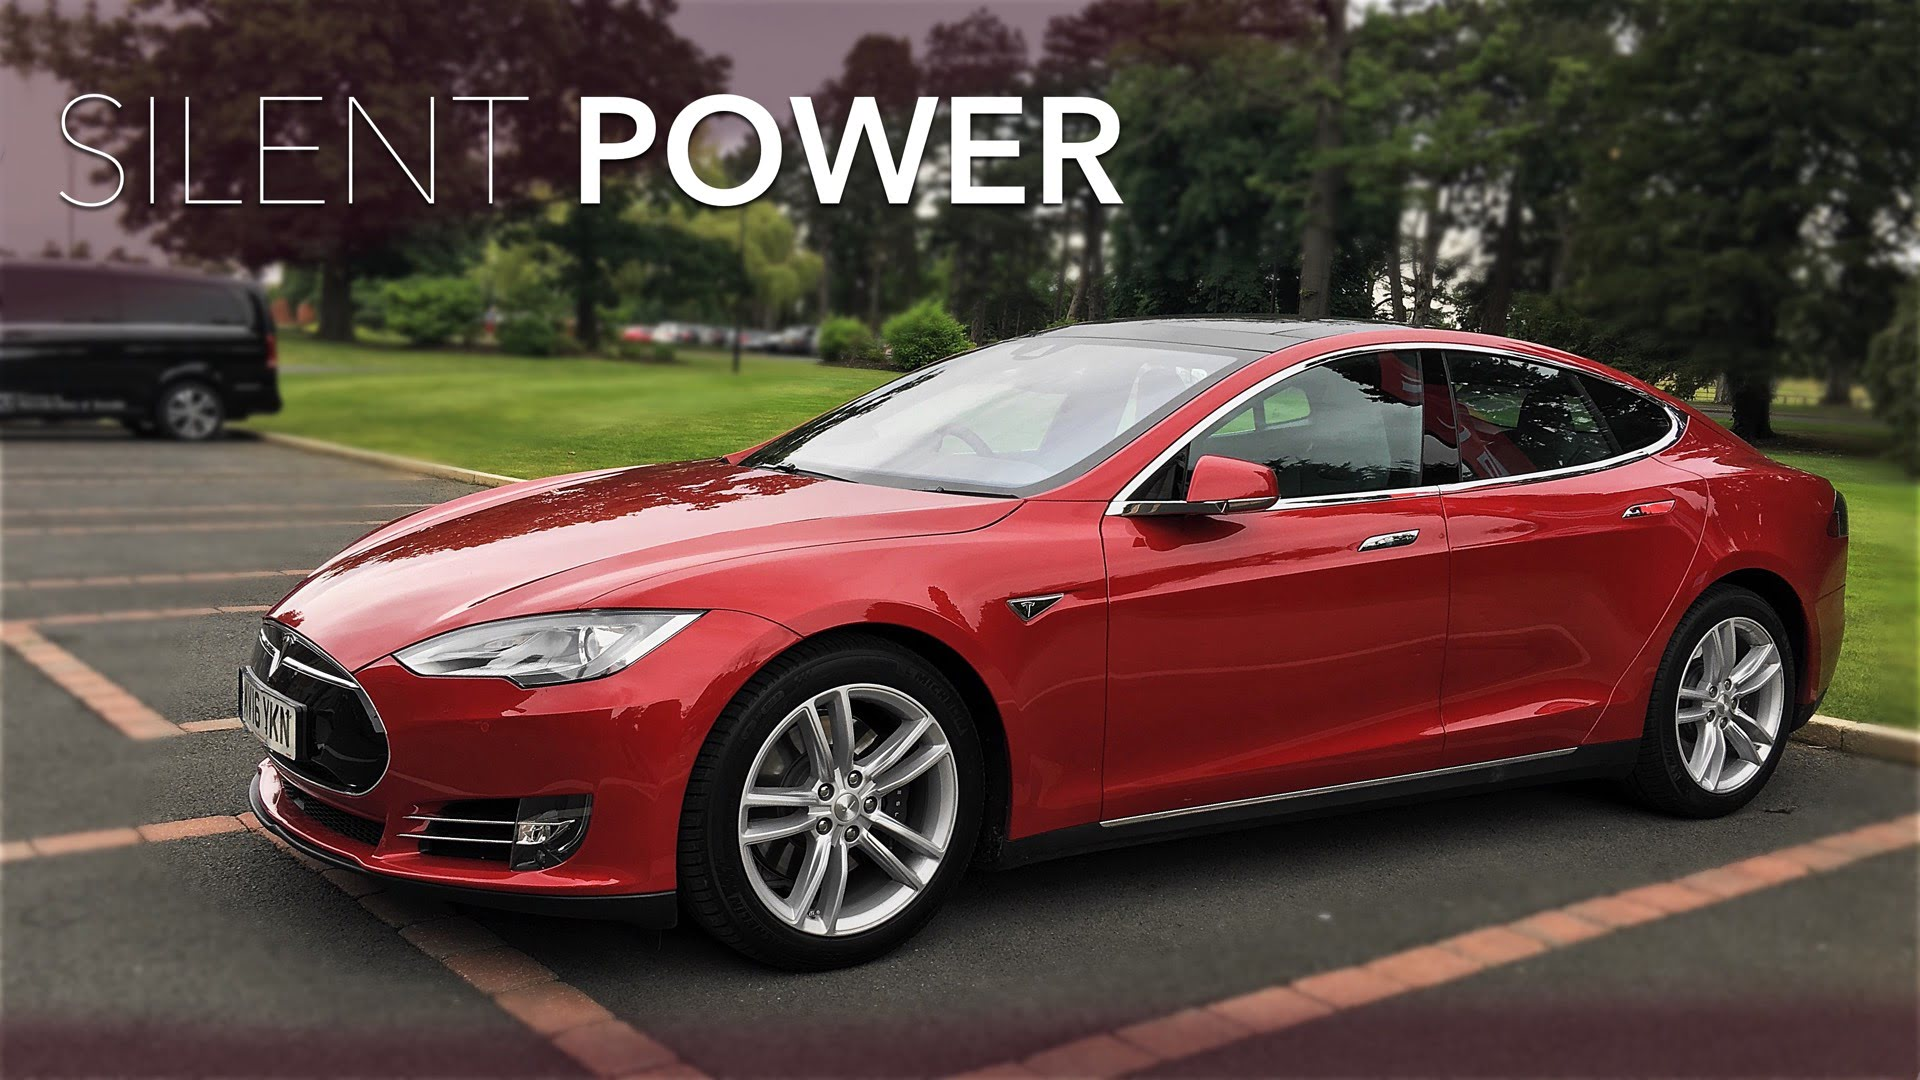 Silent Power - Tesla Model S